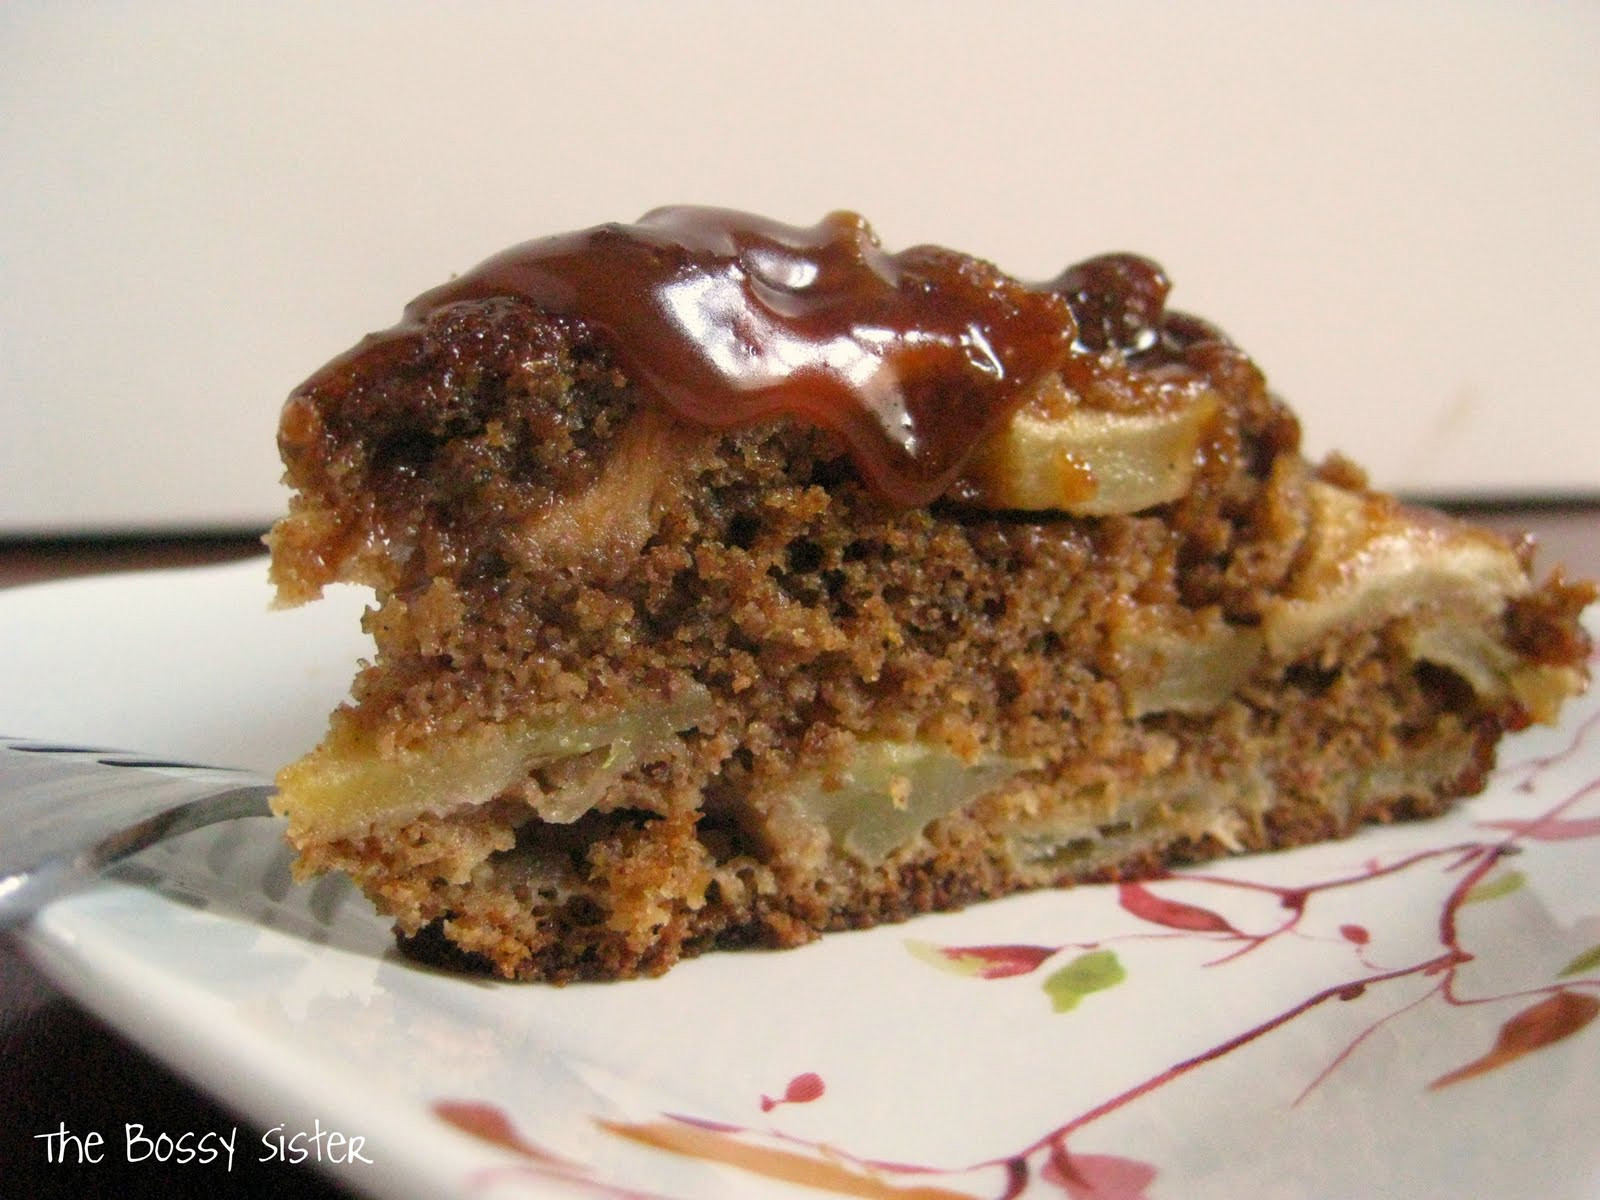 Raw Apple Cake  The Bossy Sister Raw Apple Cake with Salted Caramel Sauce